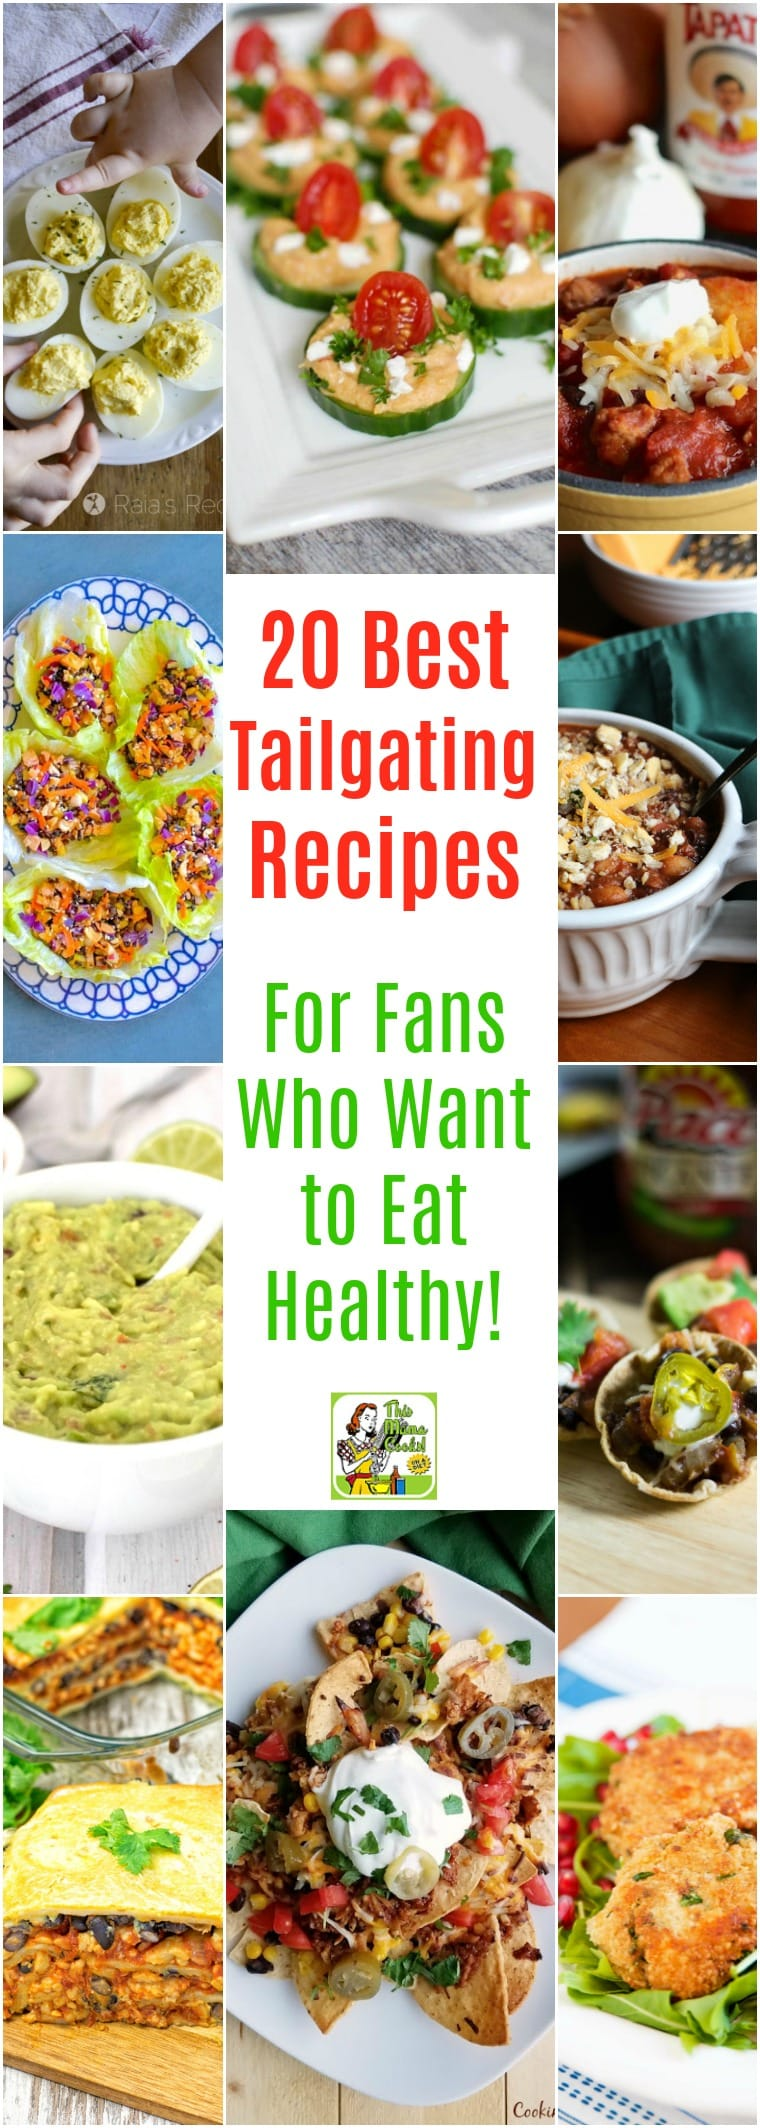 20 Best Tailgating Recipes for Fans Who Want to Eat Healthy!  Tired of going to a tailgating party just to find there's nothing you can eat because of a food sensitivity, allergy or special diet? Here's a collection of delicious top tailgating recipes that will certainly please football fans that want to eat healthy or who are on special diets from gluten free to vegan.